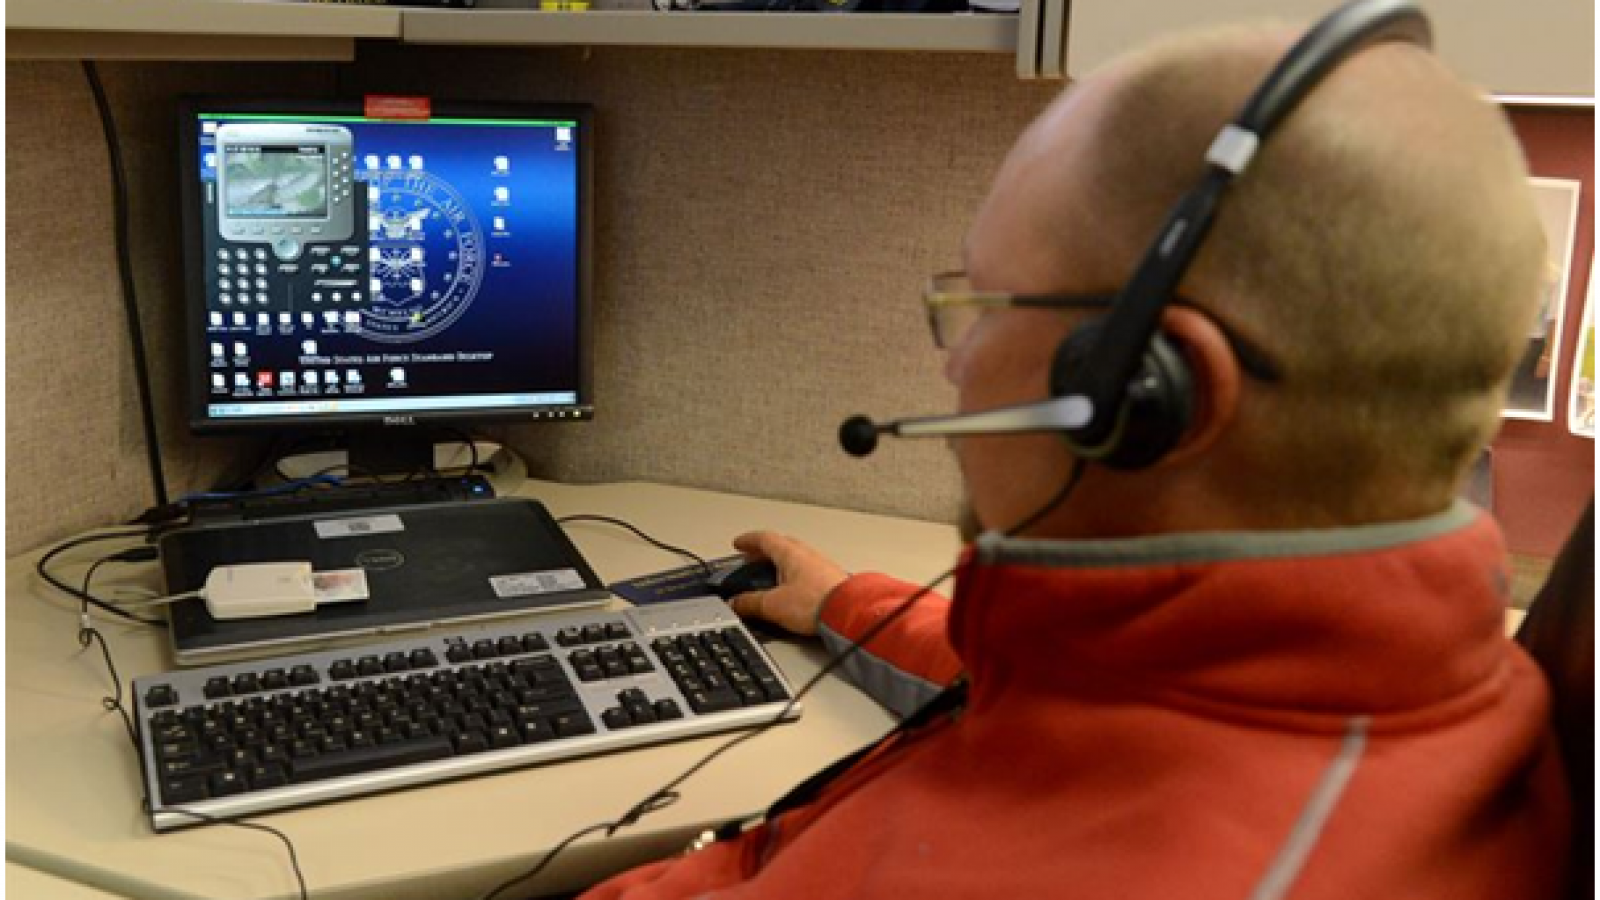 How does a loss of internet access affect VoIP calls2